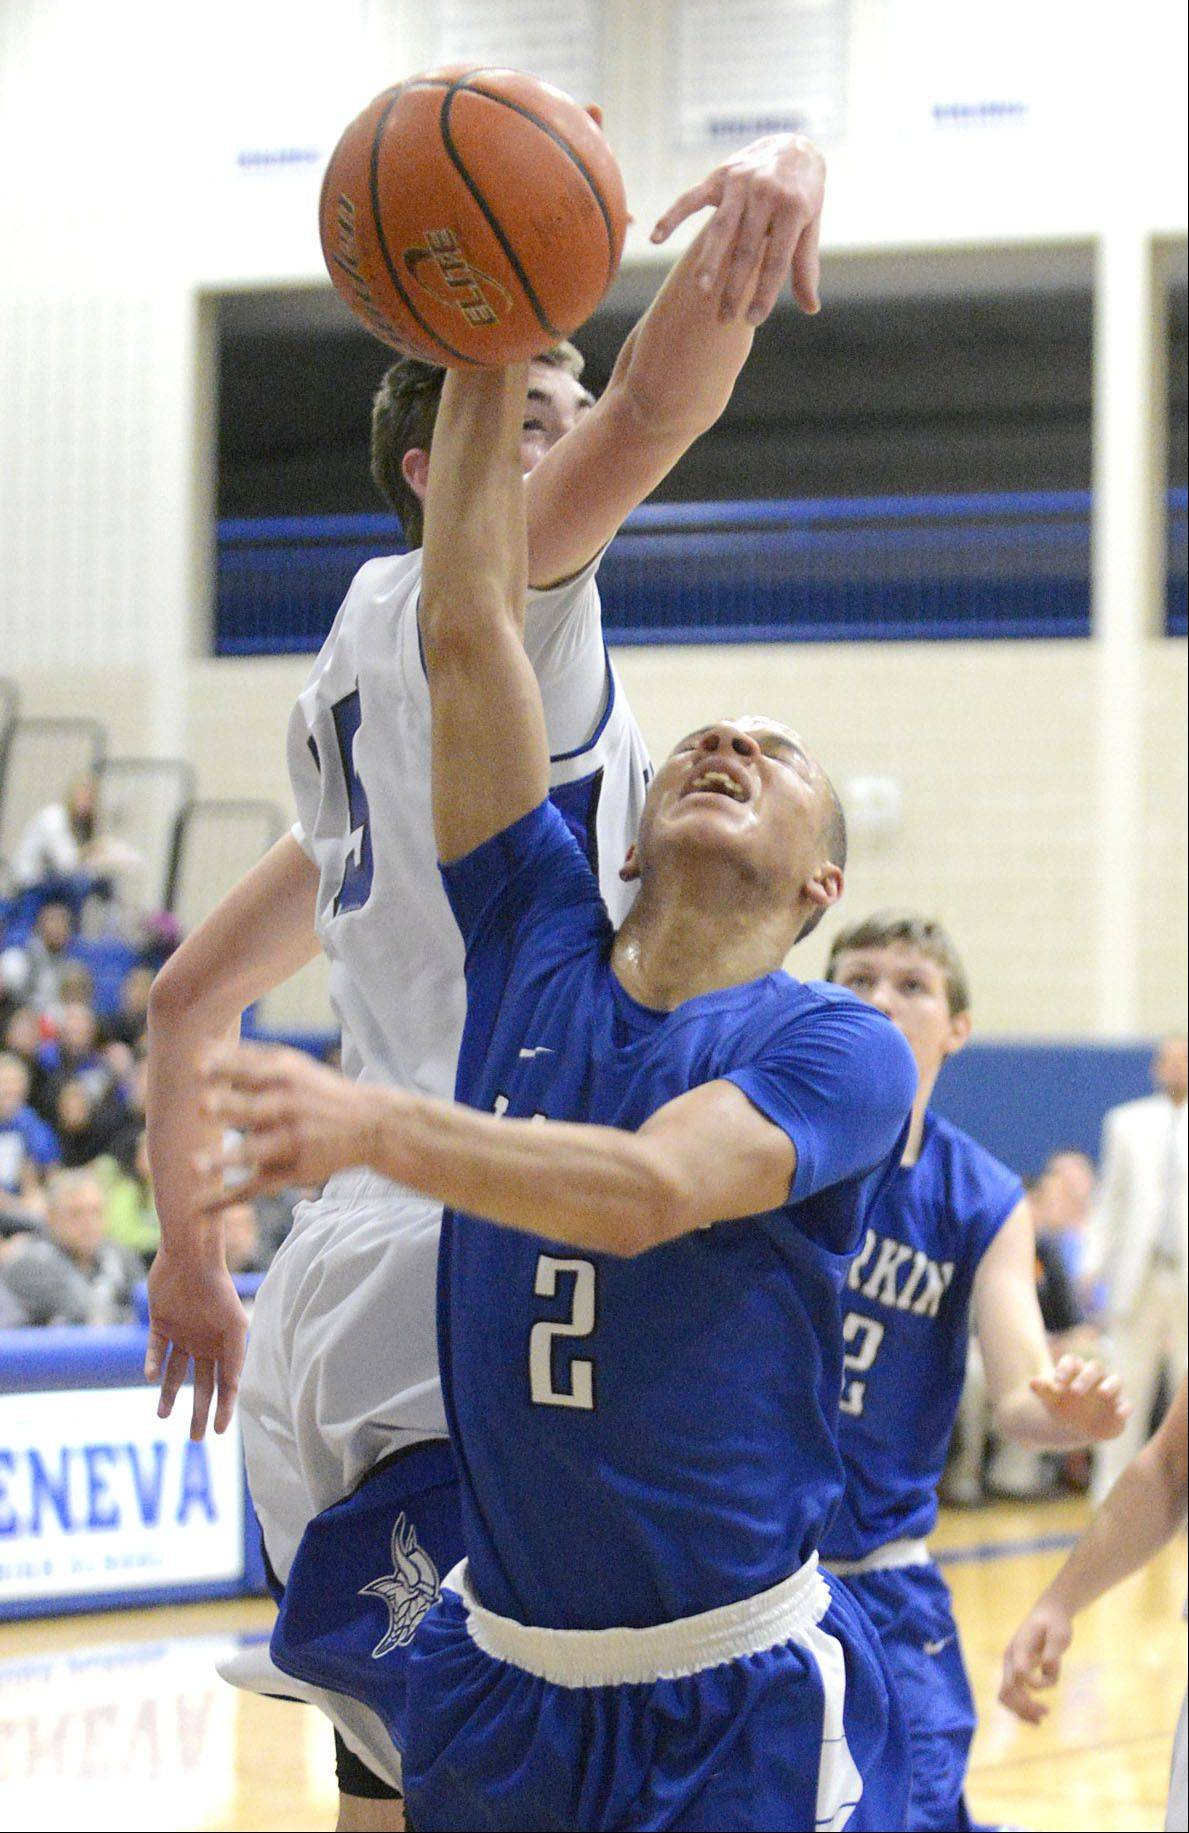 Geneva's Nate Navigato denies Larkin's Derrick Streety a basket in the first quarter.